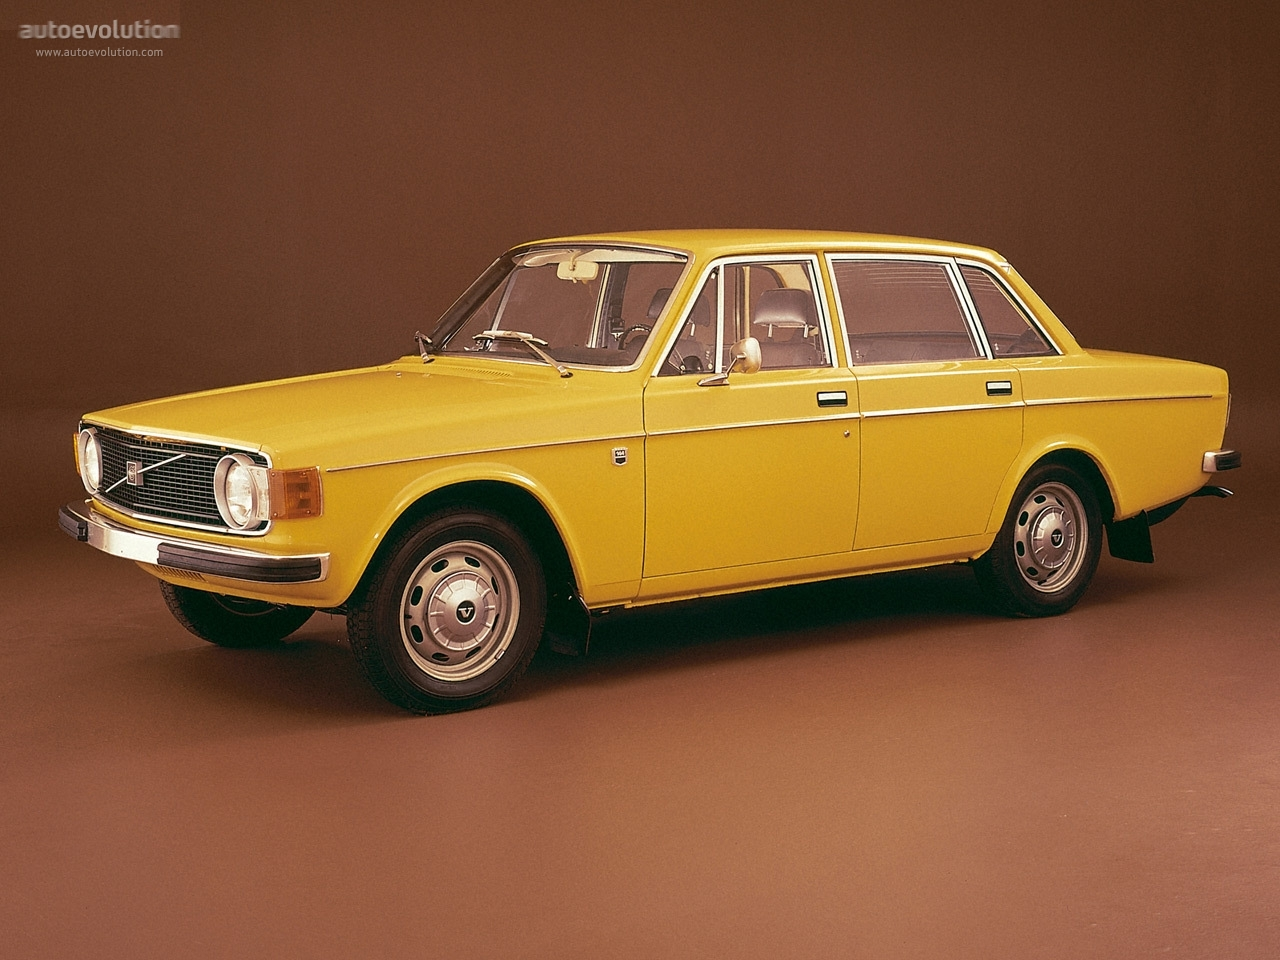 volvo 144 specs 1967 1968 1969 1970 1971 1972 1973 1974 autoevolution. Black Bedroom Furniture Sets. Home Design Ideas